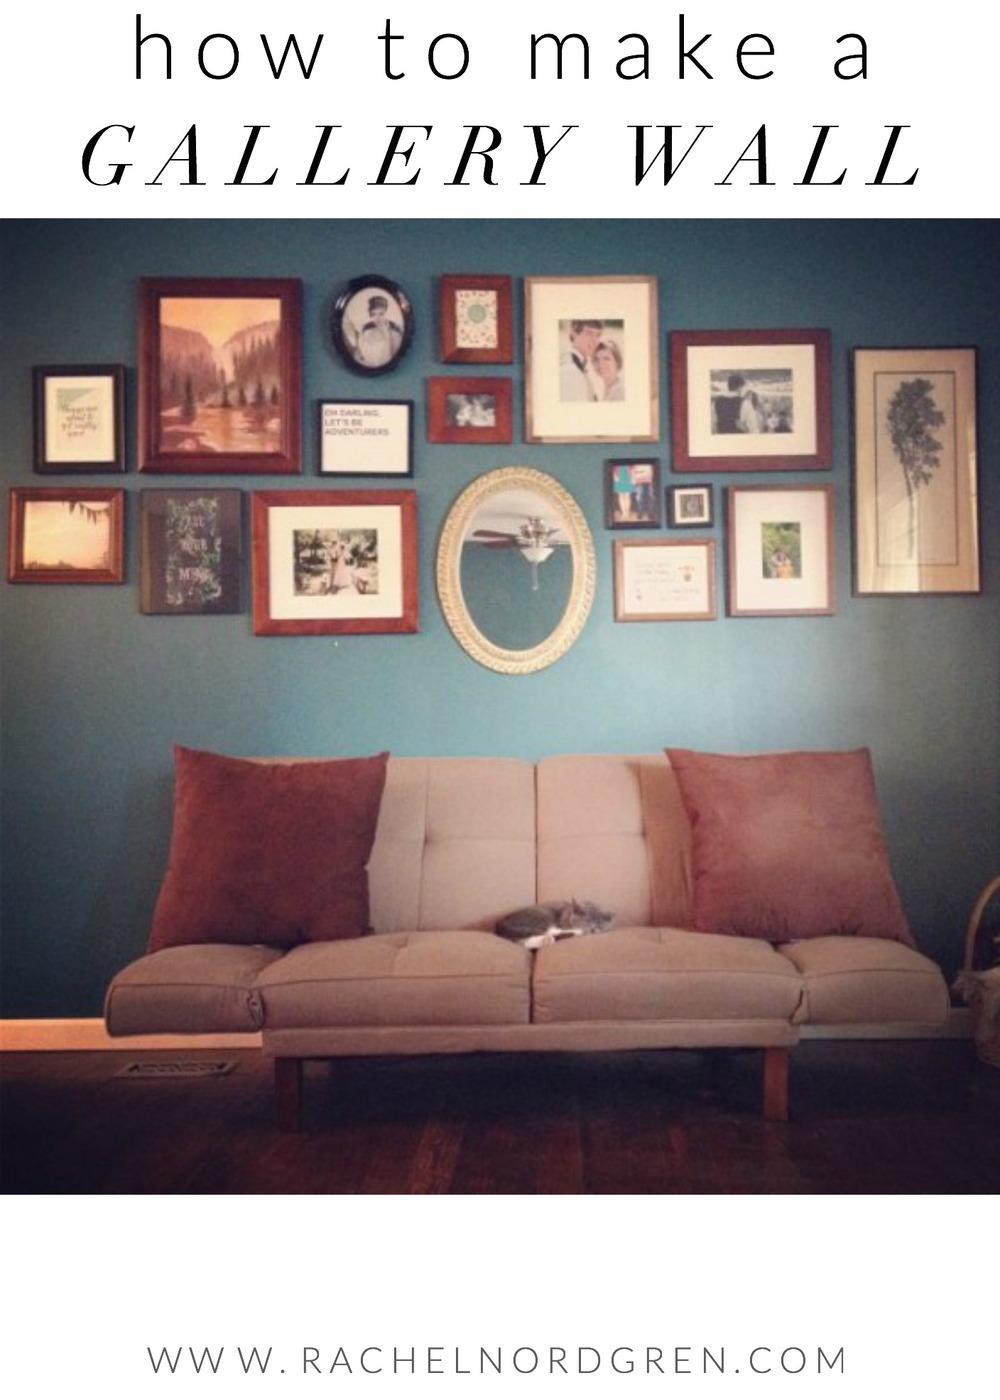 how-to-make-a-gallery-wall2.jpg